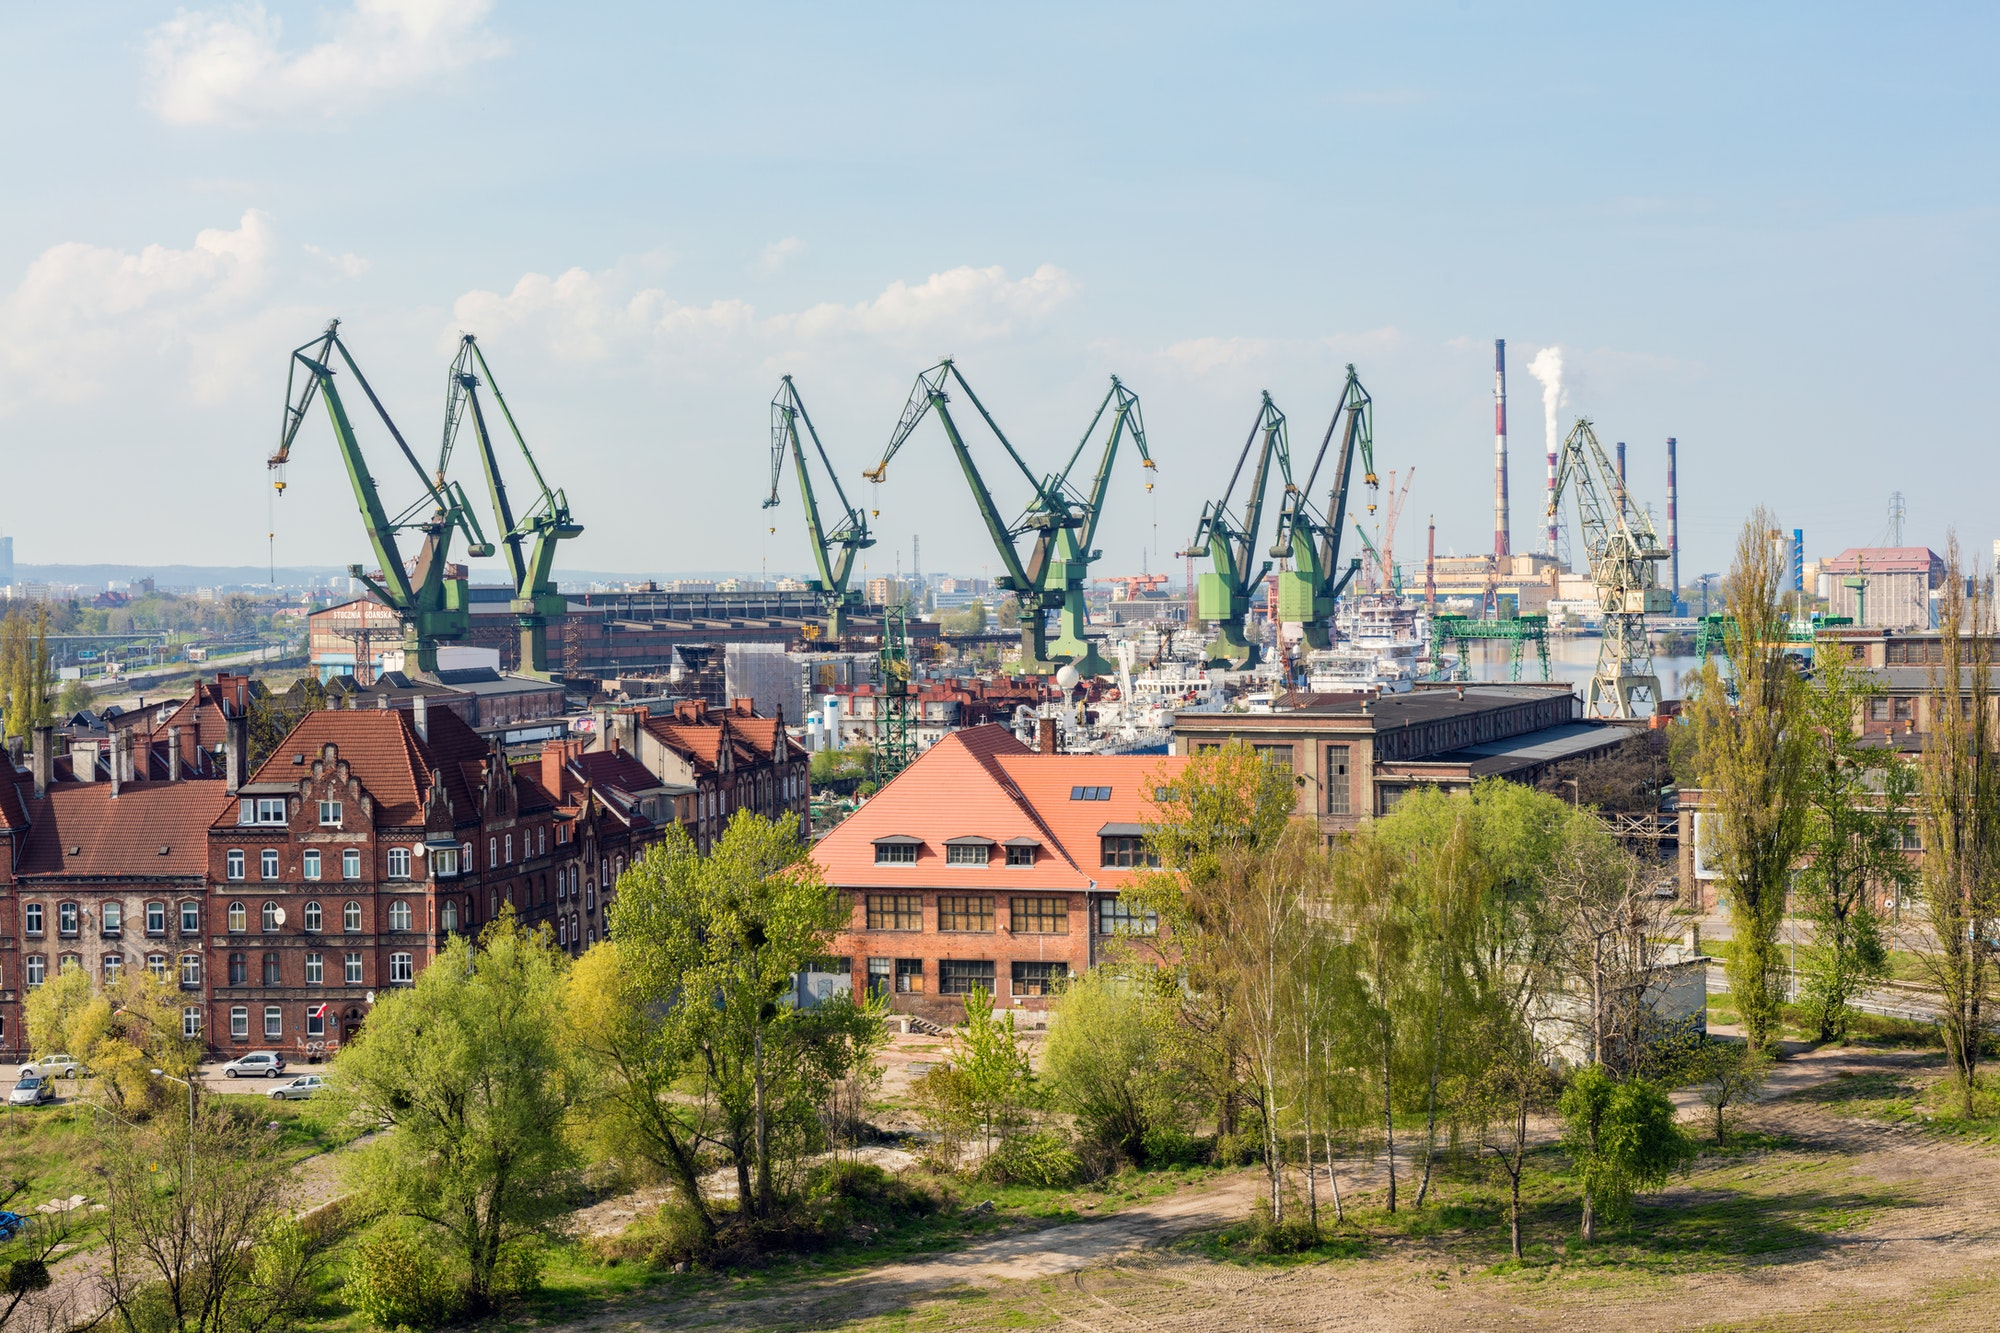 GDANSK, POLAND, May 14, 2018: A view of Gdansk shipyard and the green cranes.